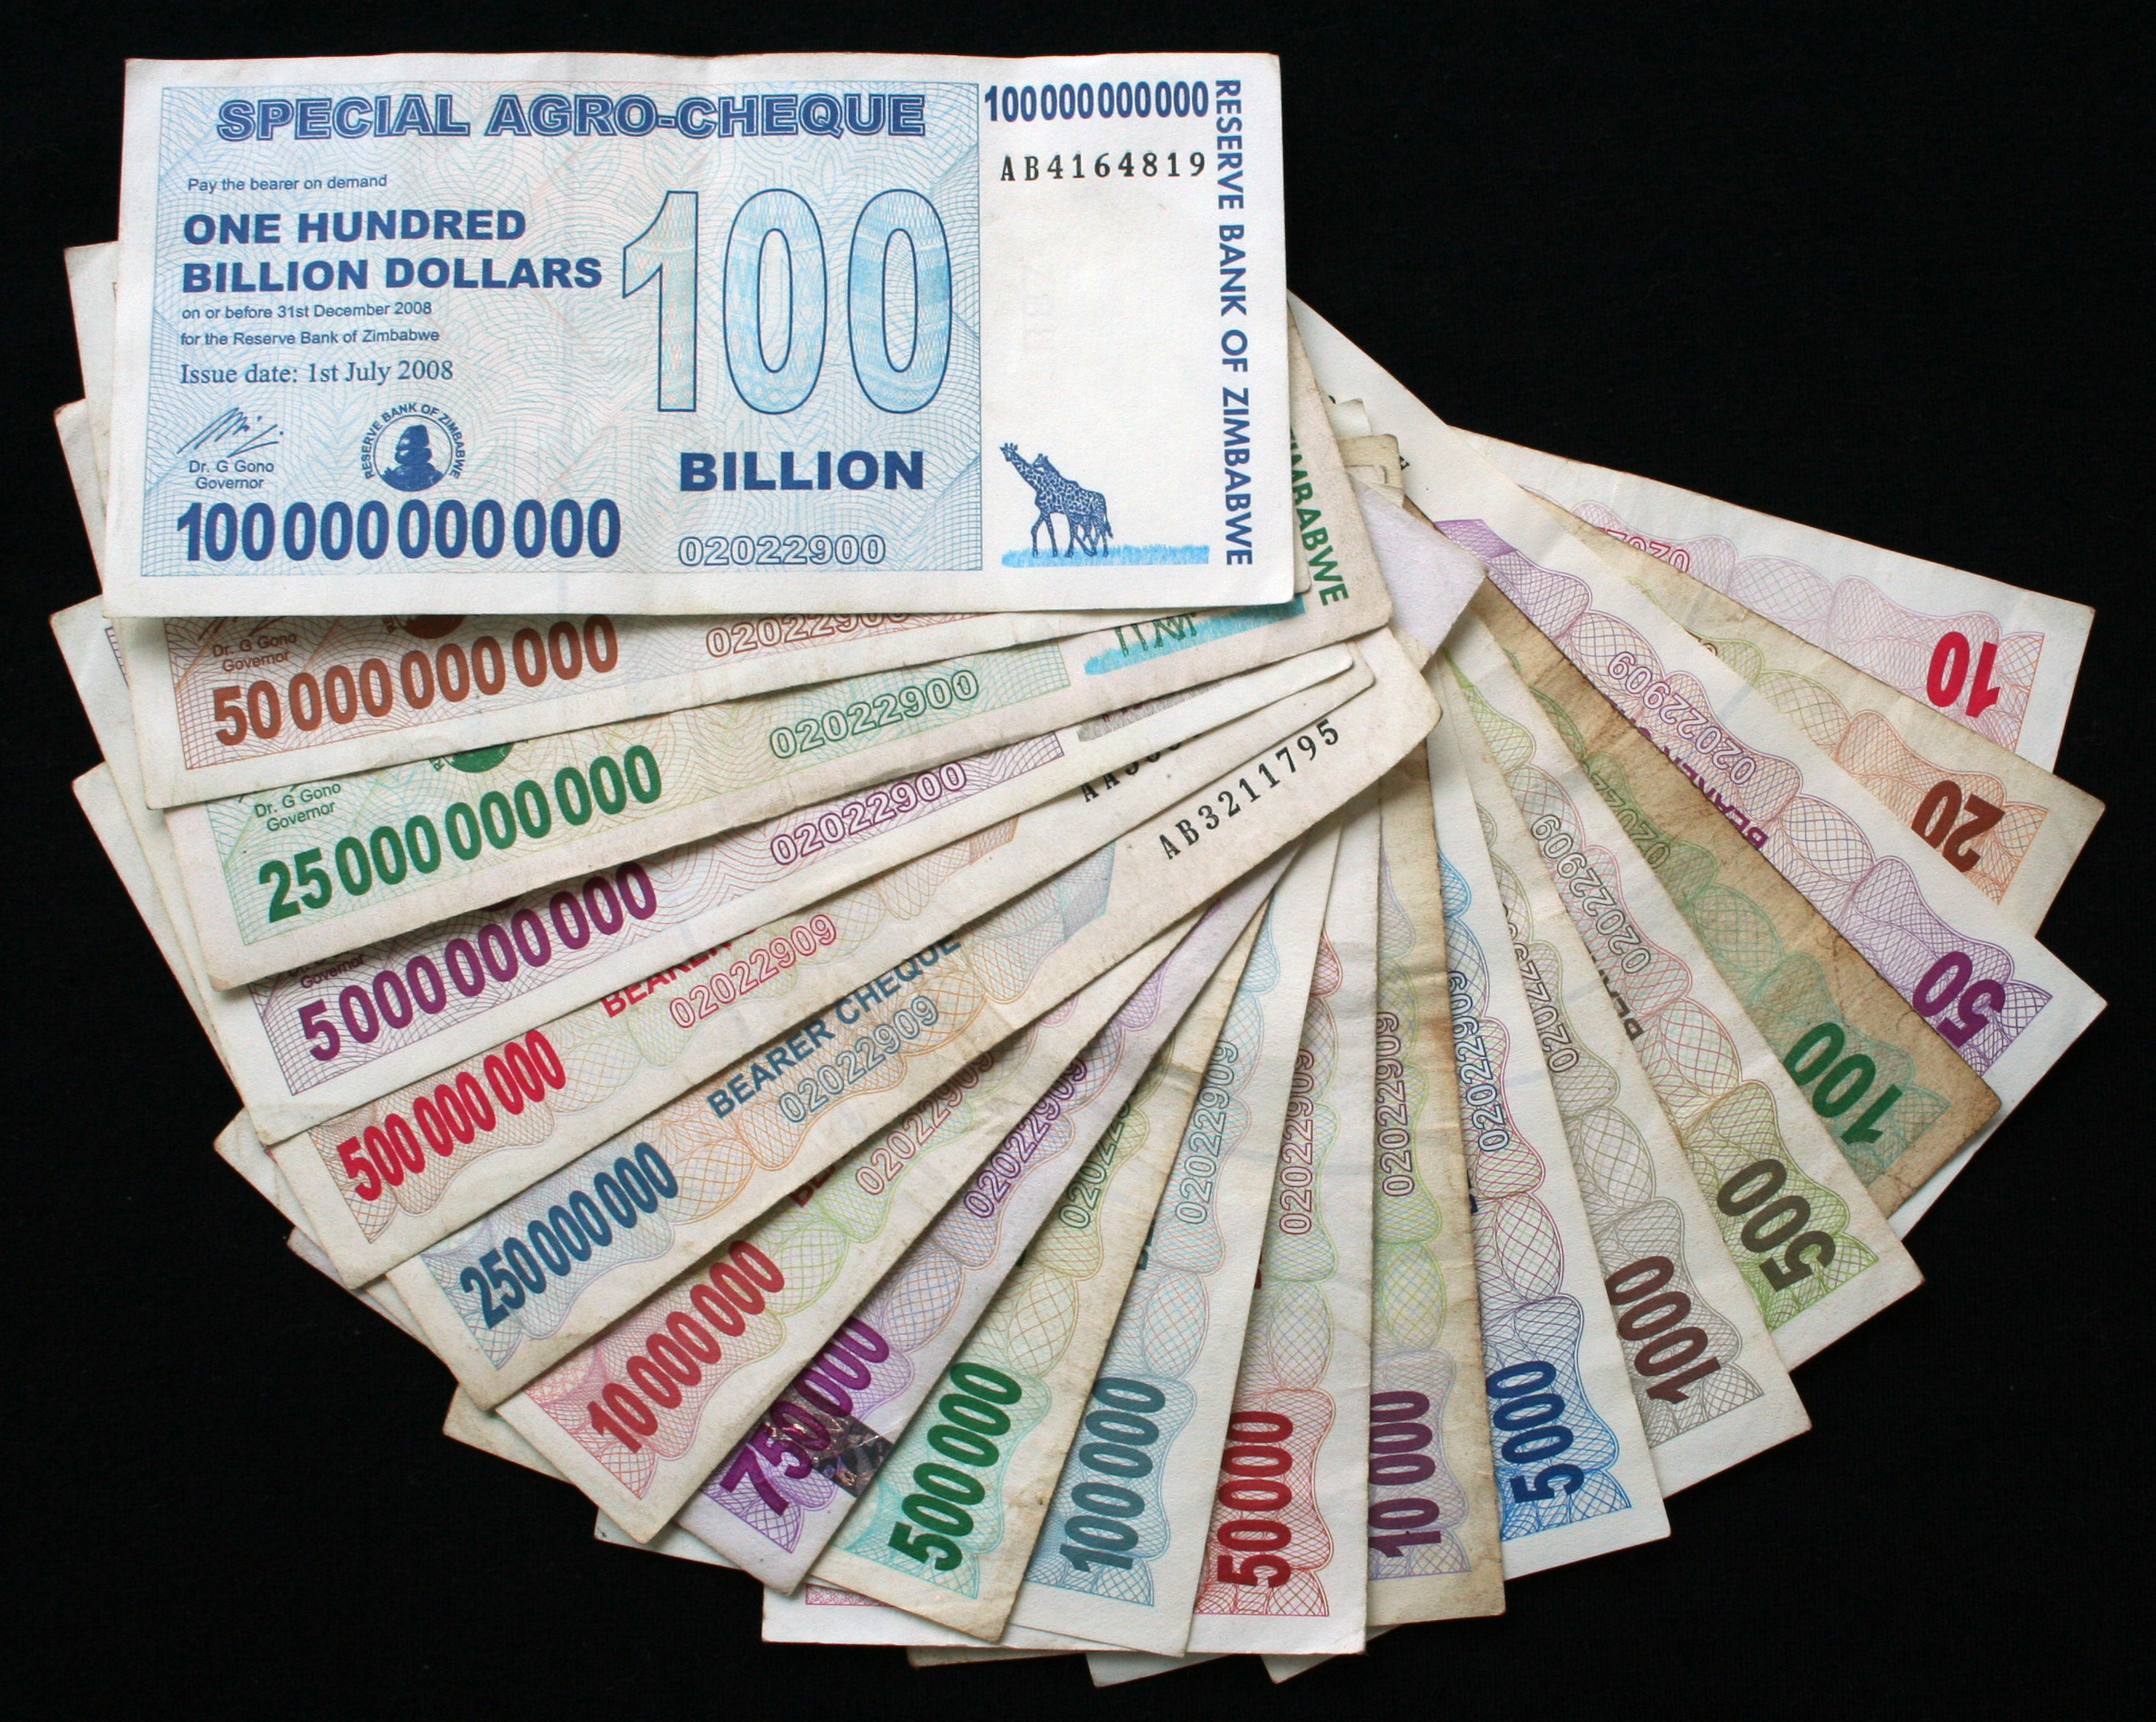 Description Zimbabwe Hyperinflation 2008 notes.jpg